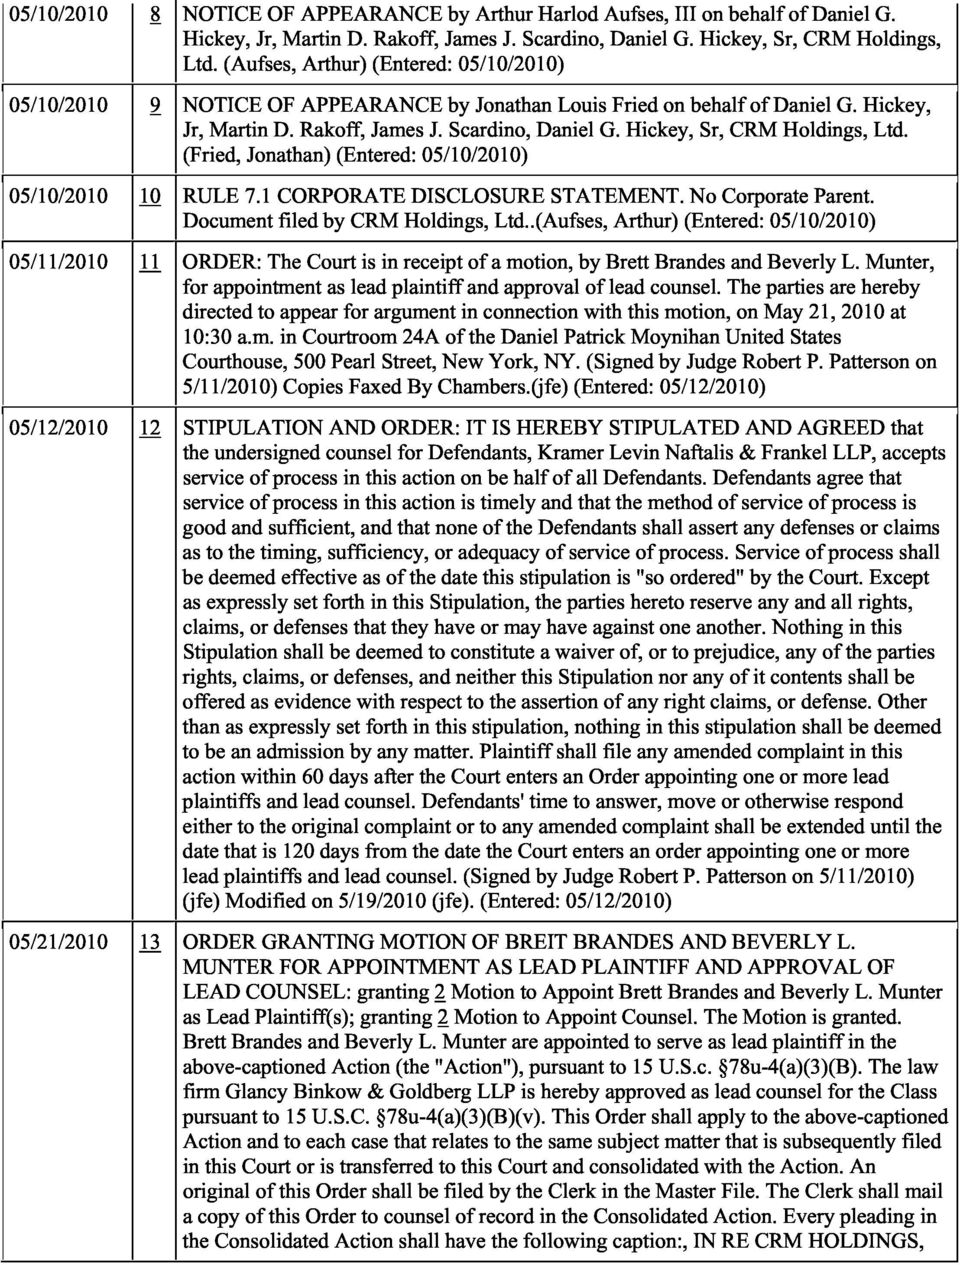 Hickey, Sr, CRM Holdings, Ltd. (Fried, Jonathan) (Entered: 05/10/2010) 05/10/2010 10 RULE 7.1 CORPORATE DISCLOSURE STATEMENT. No Corporate Parent. Document filed by CRM Holdings, Ltd.